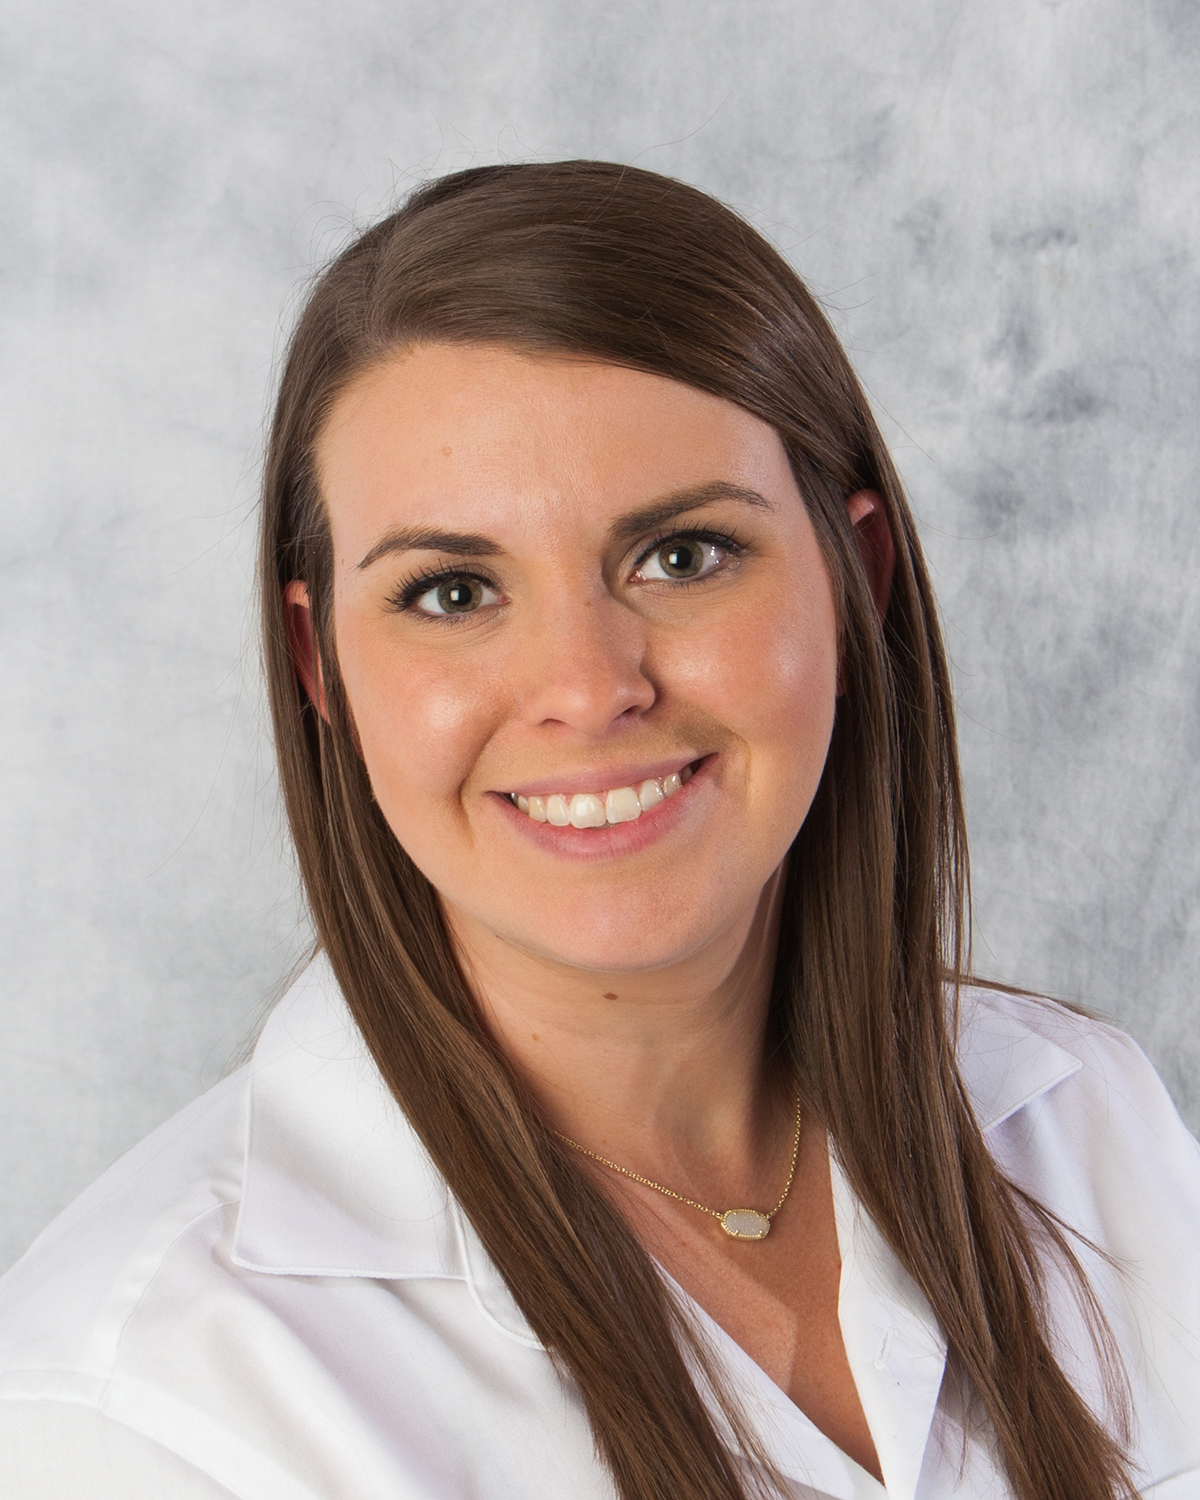 Associate degree in physical therapy - She Then Returned To South Louisiana To Earn Her Associate Of Science Degree From Our Lady Of The Lake College In Physical Therapist Assisting In 2017